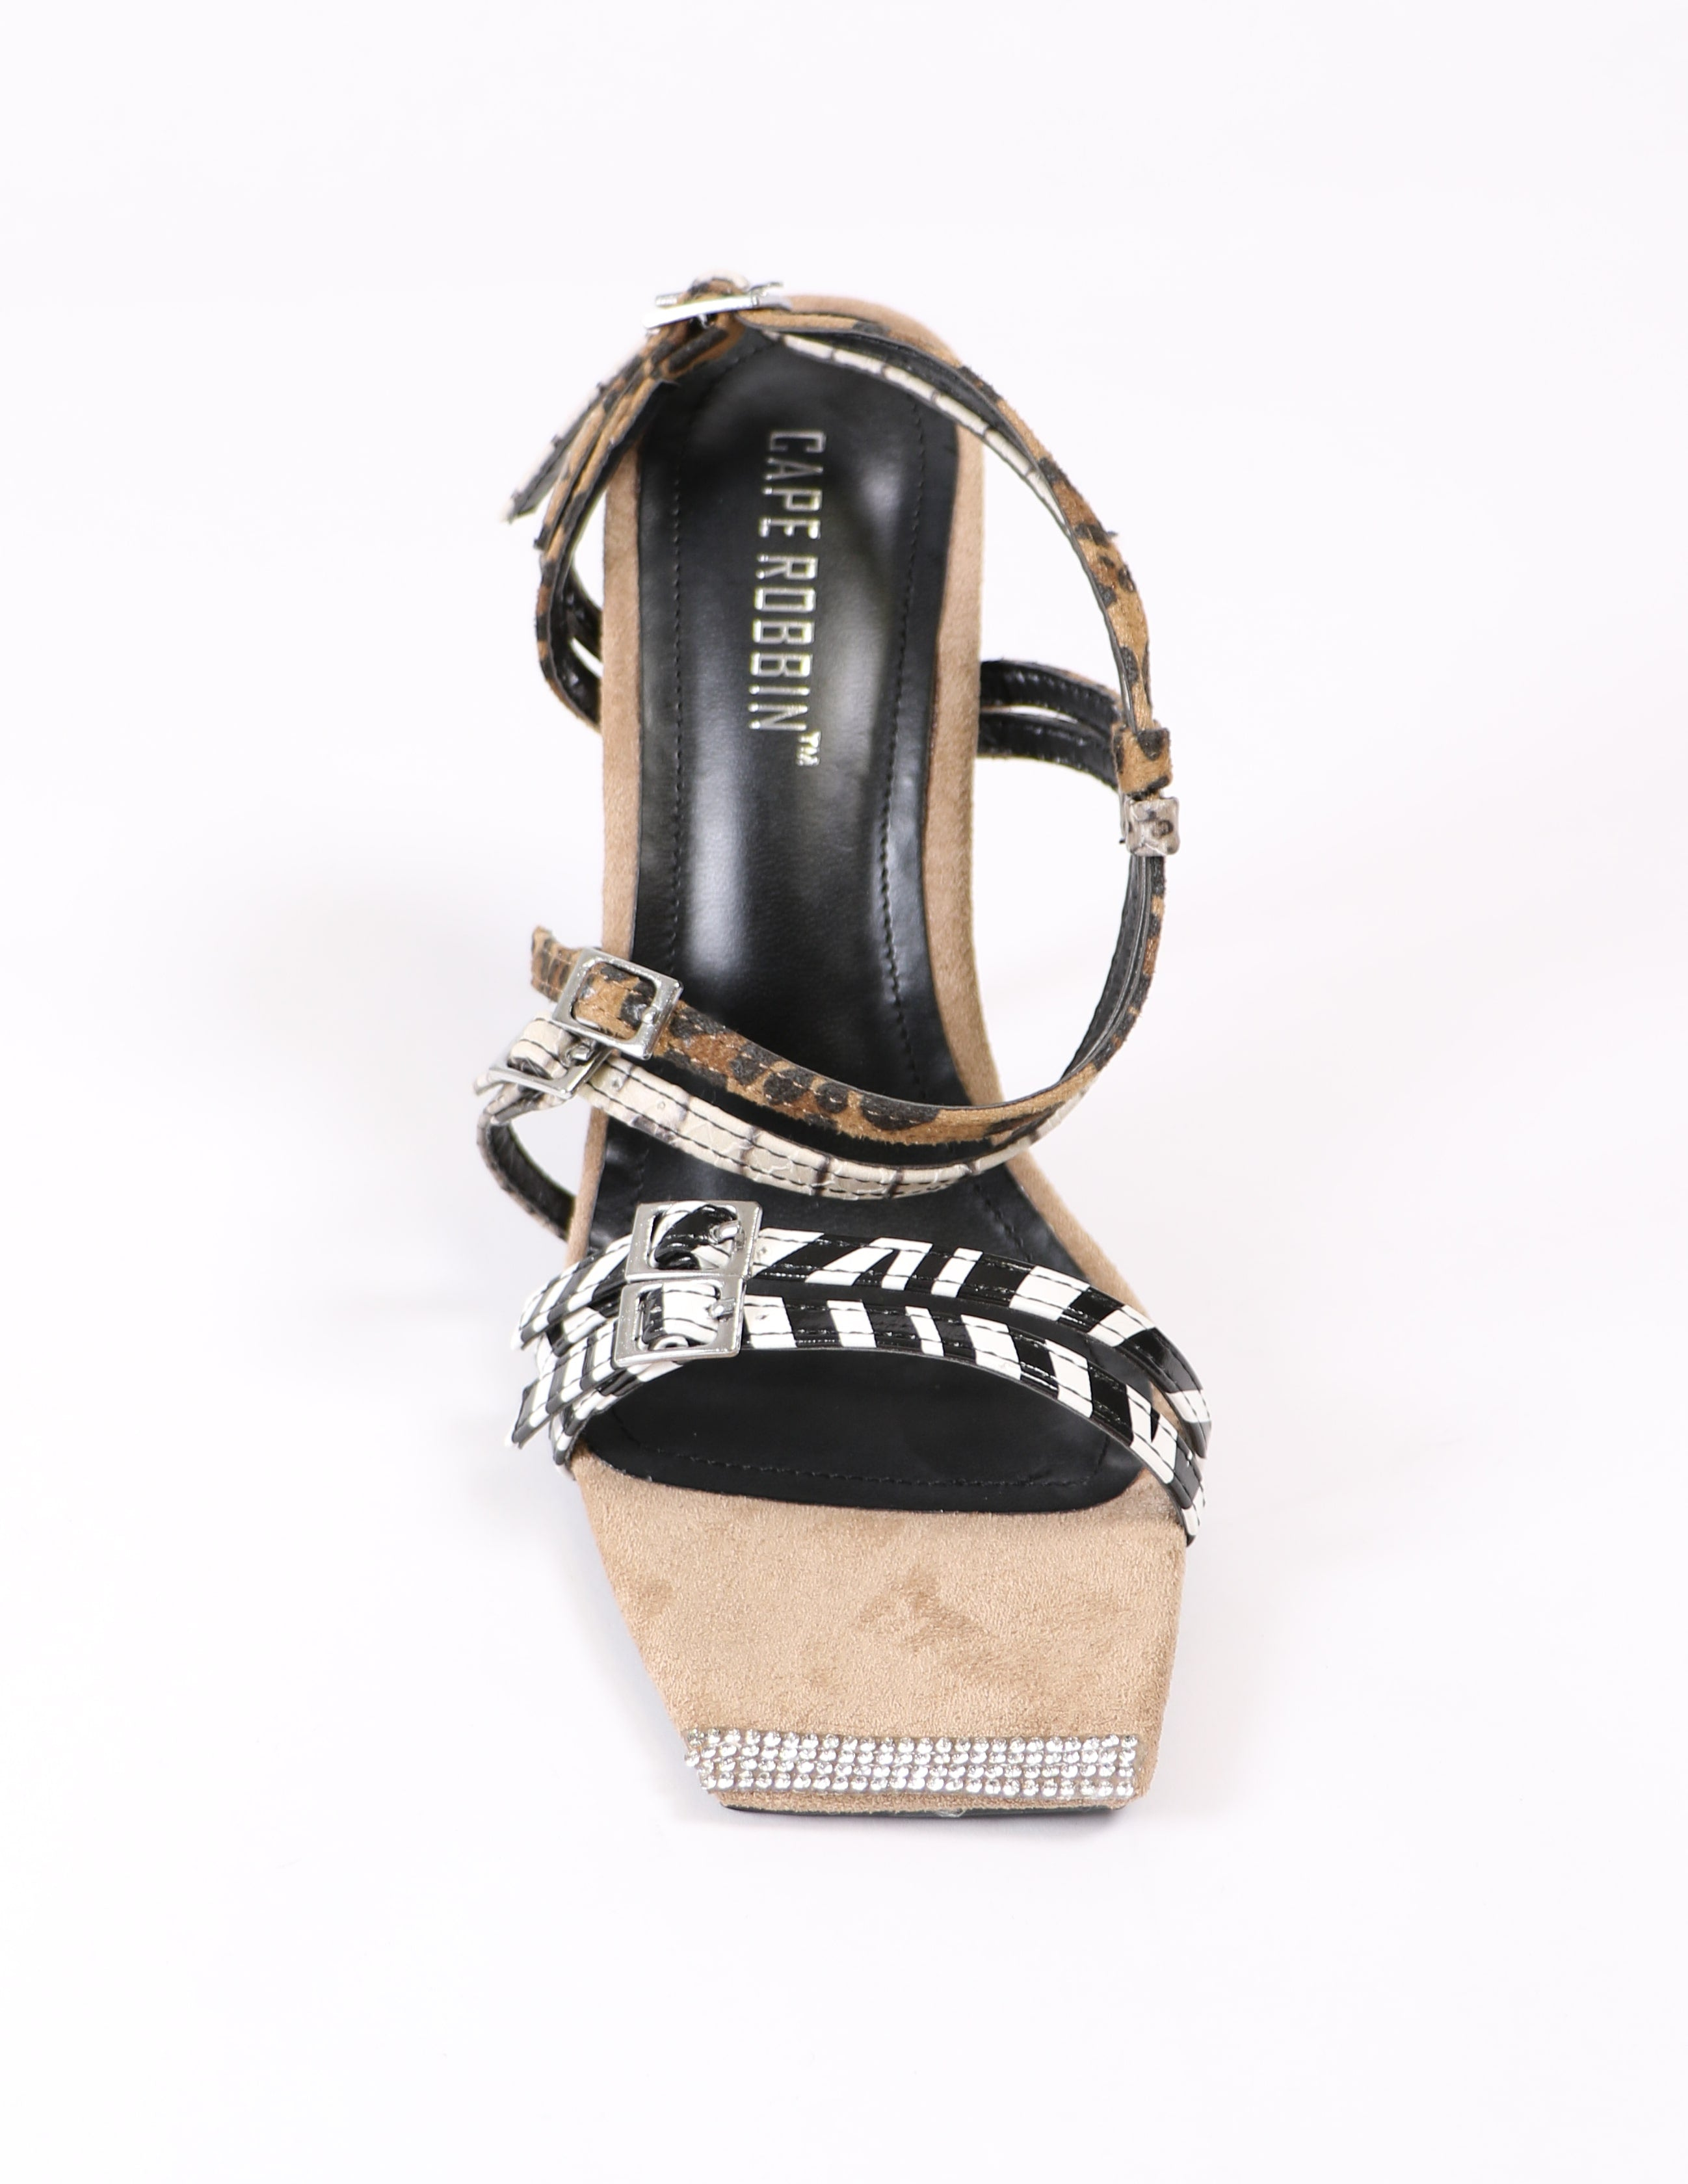 top of the animal print strappy heel on white background